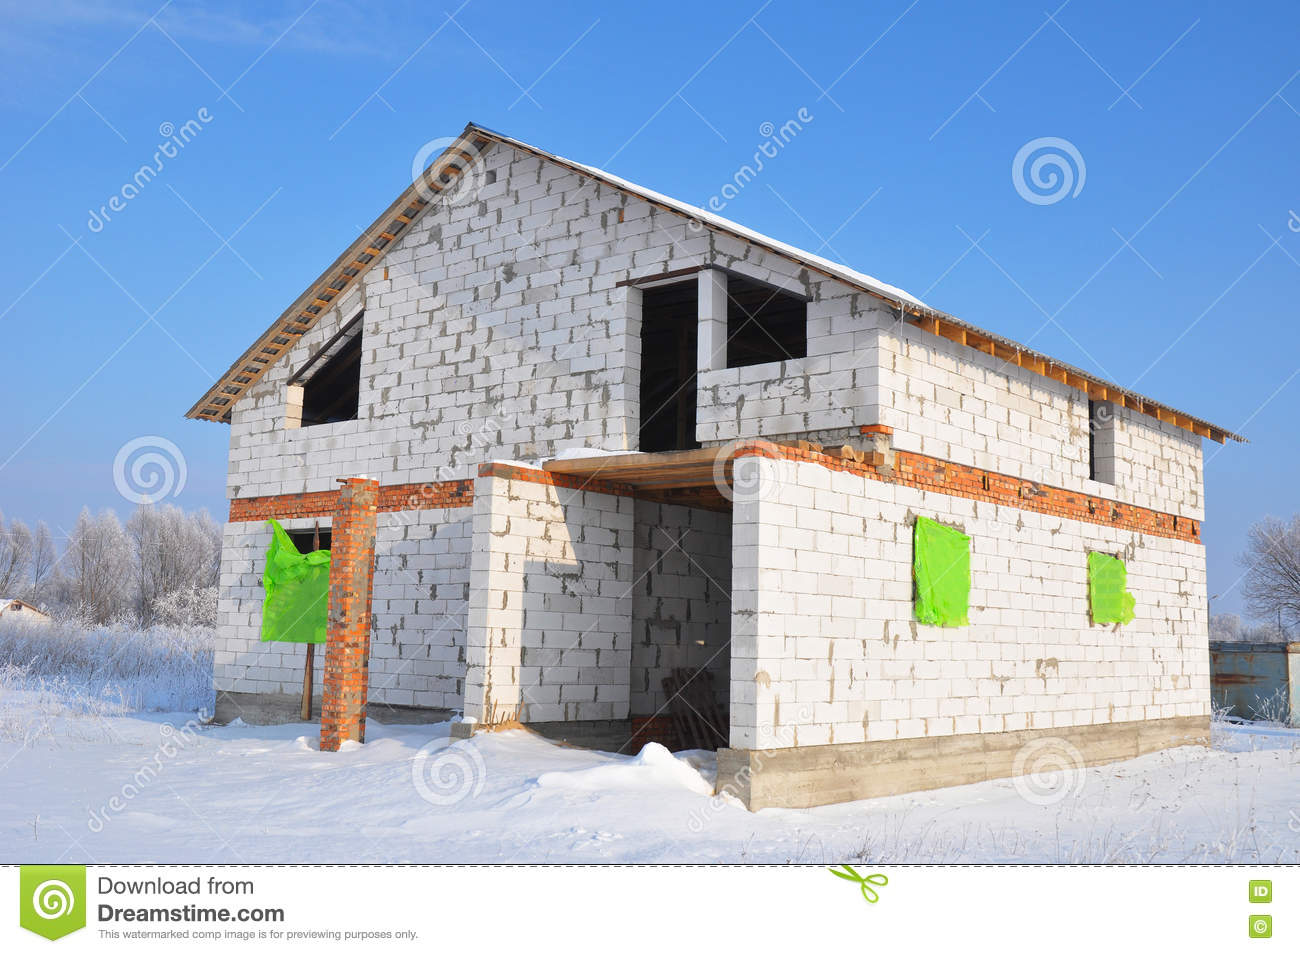 Building new house from white autoclaved aerated concrete for Building a concrete house